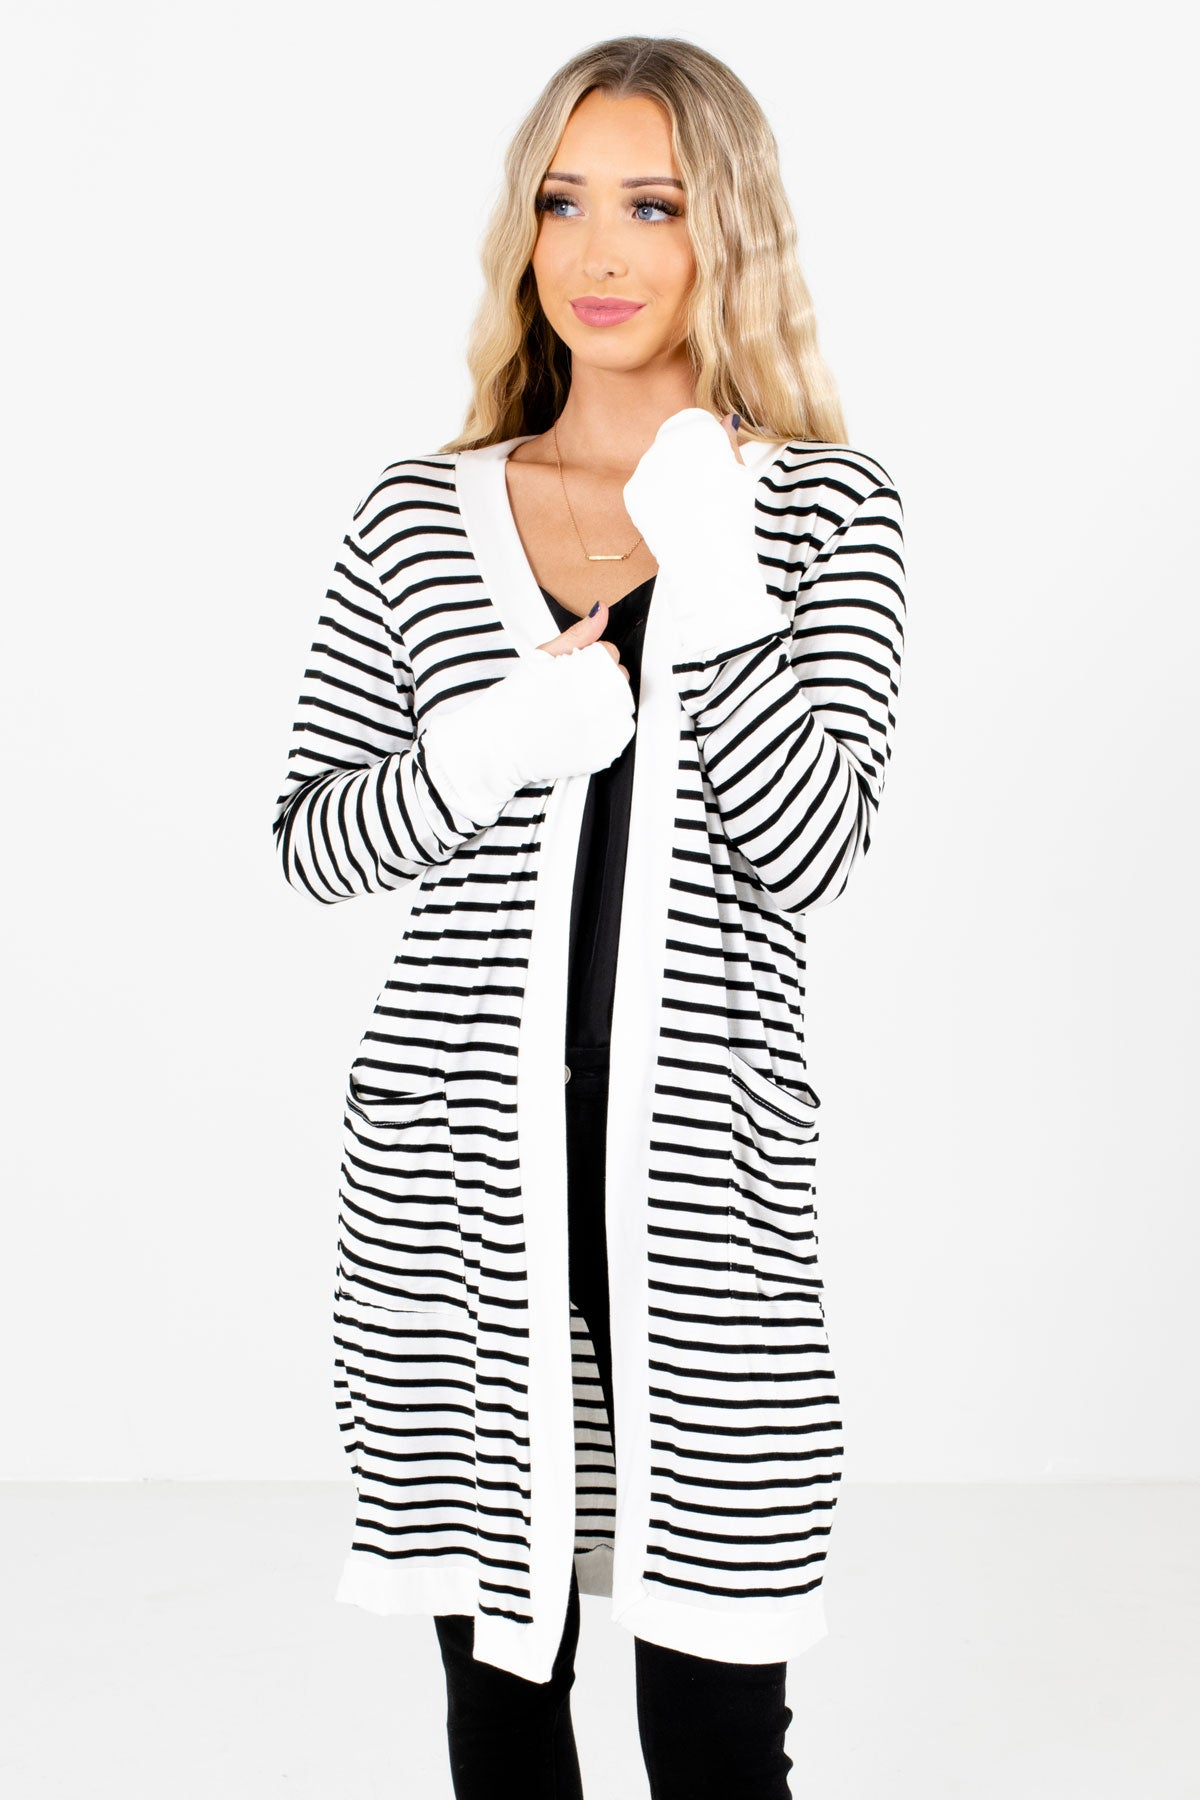 White and Black Striped Boutique Cardigans for Women